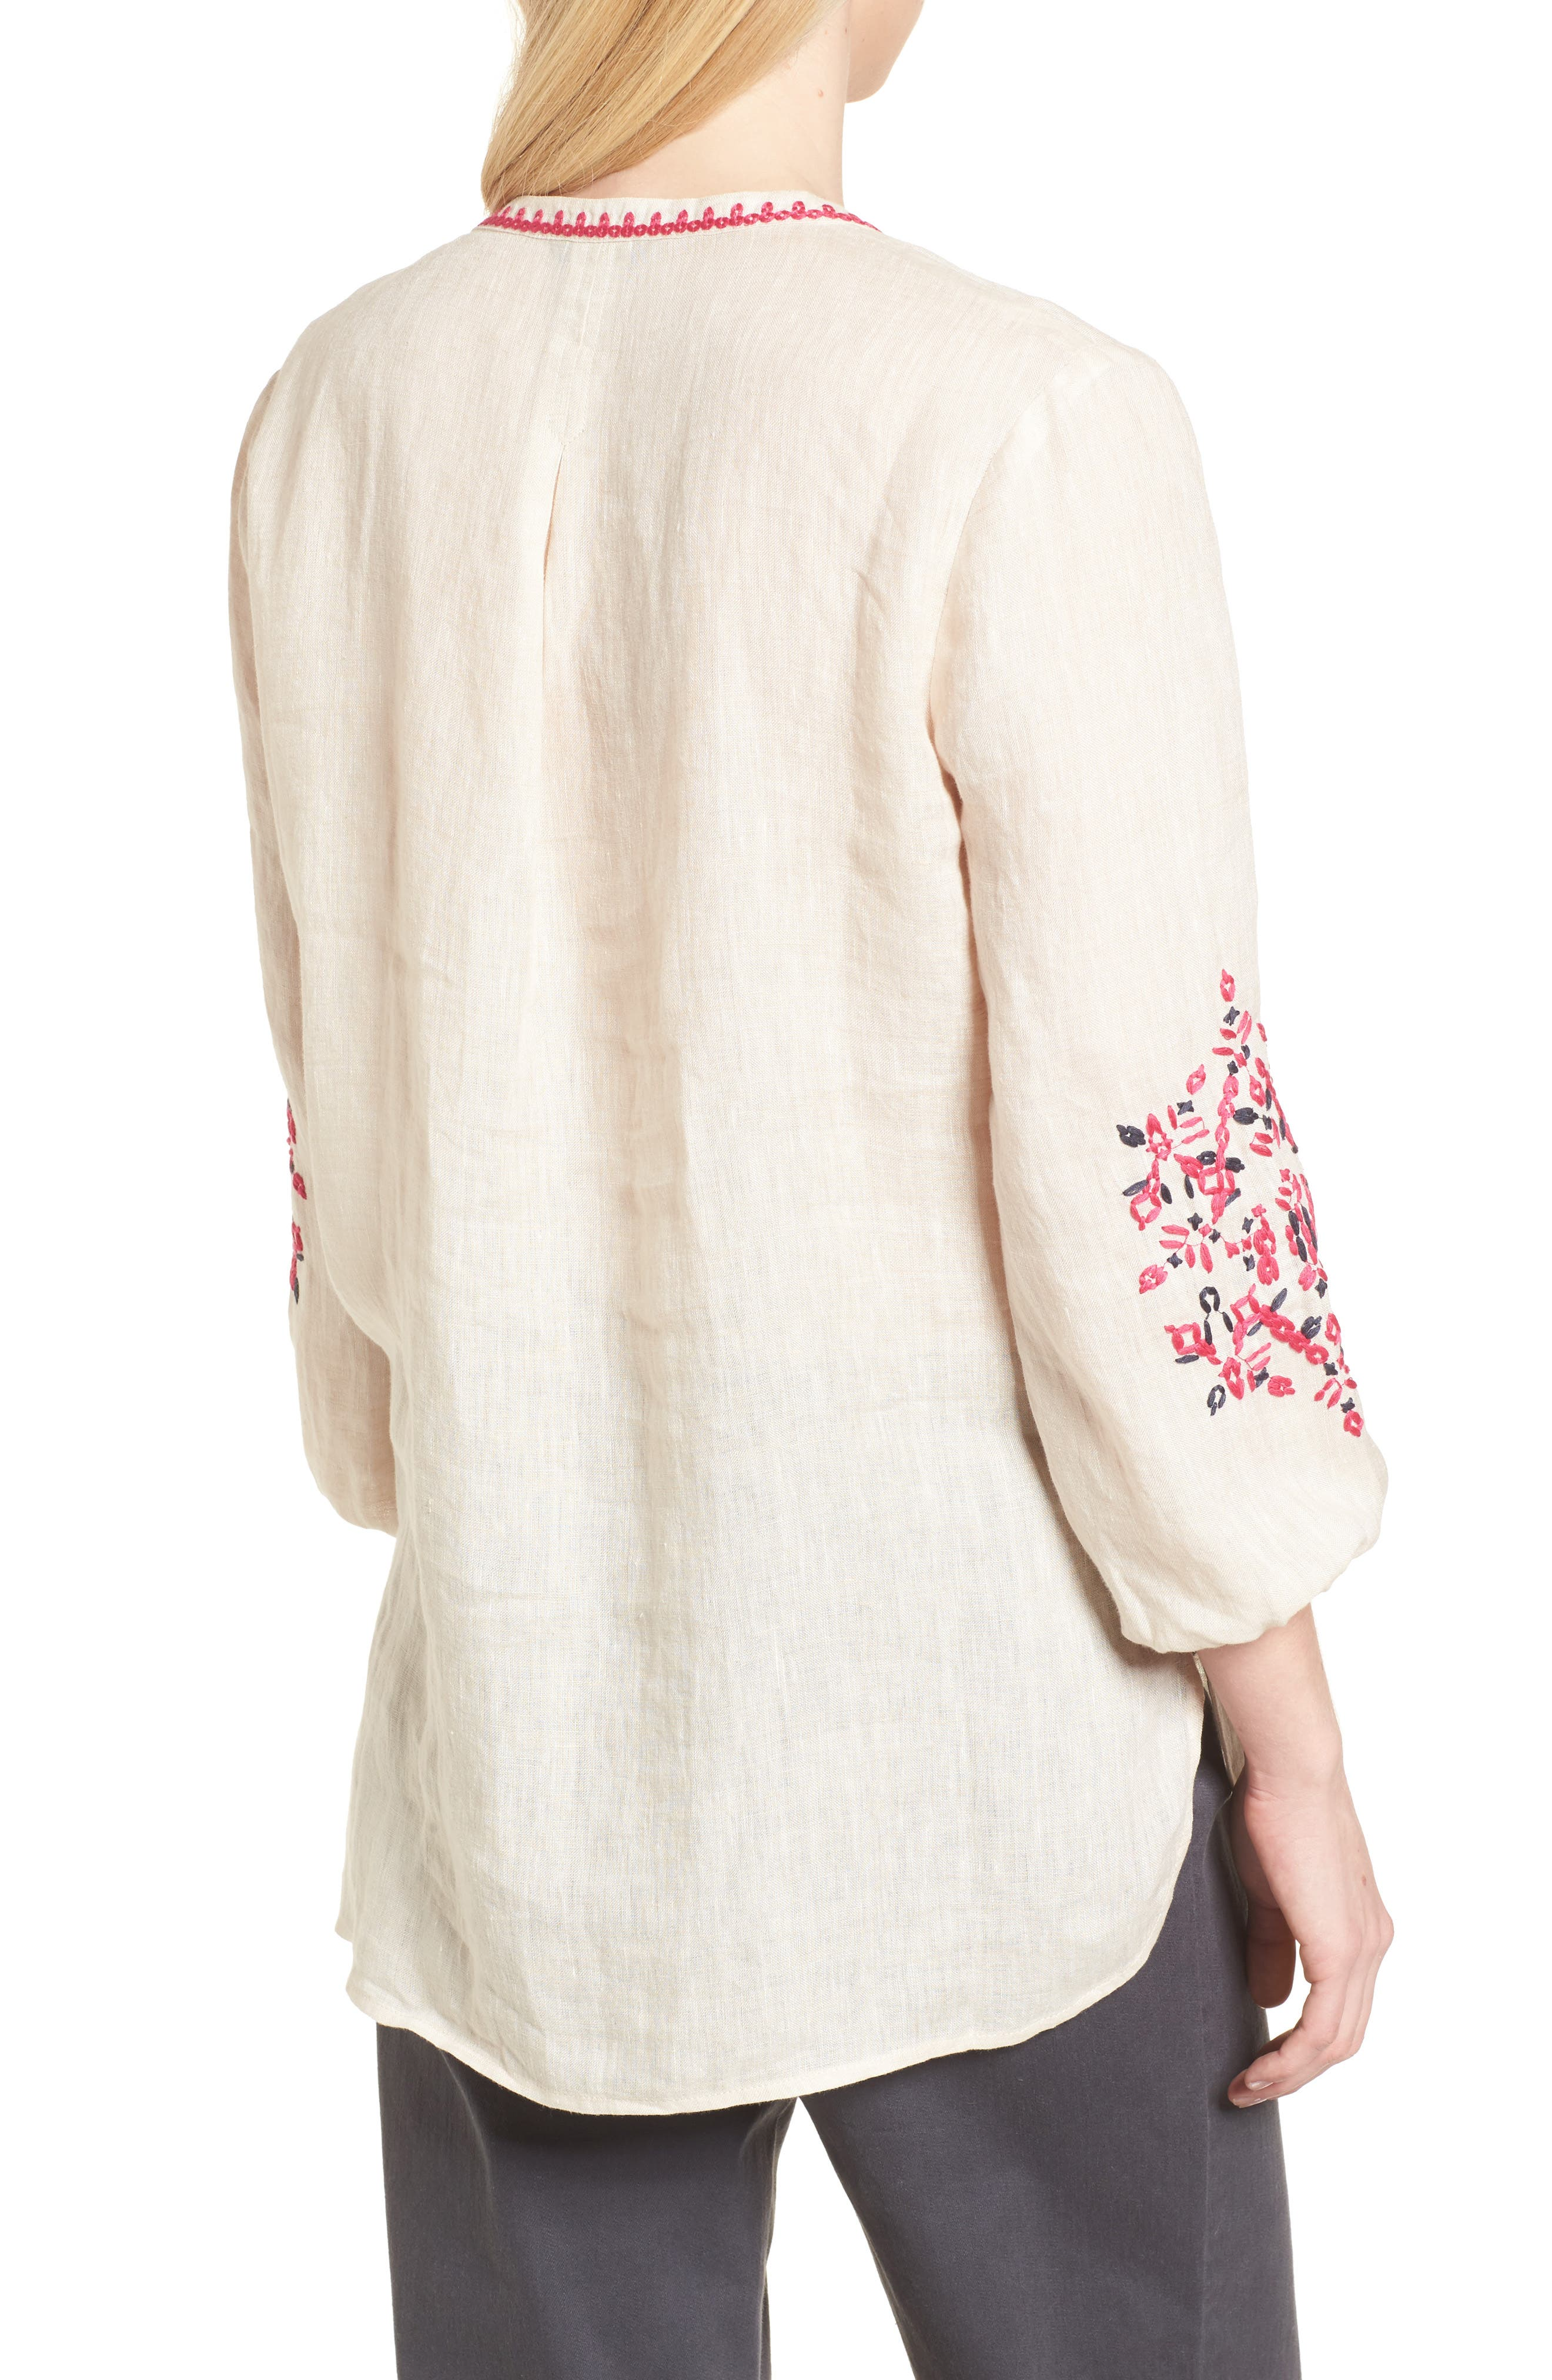 Flora Embroidered Linen Top,                             Alternate thumbnail 2, color,                             261